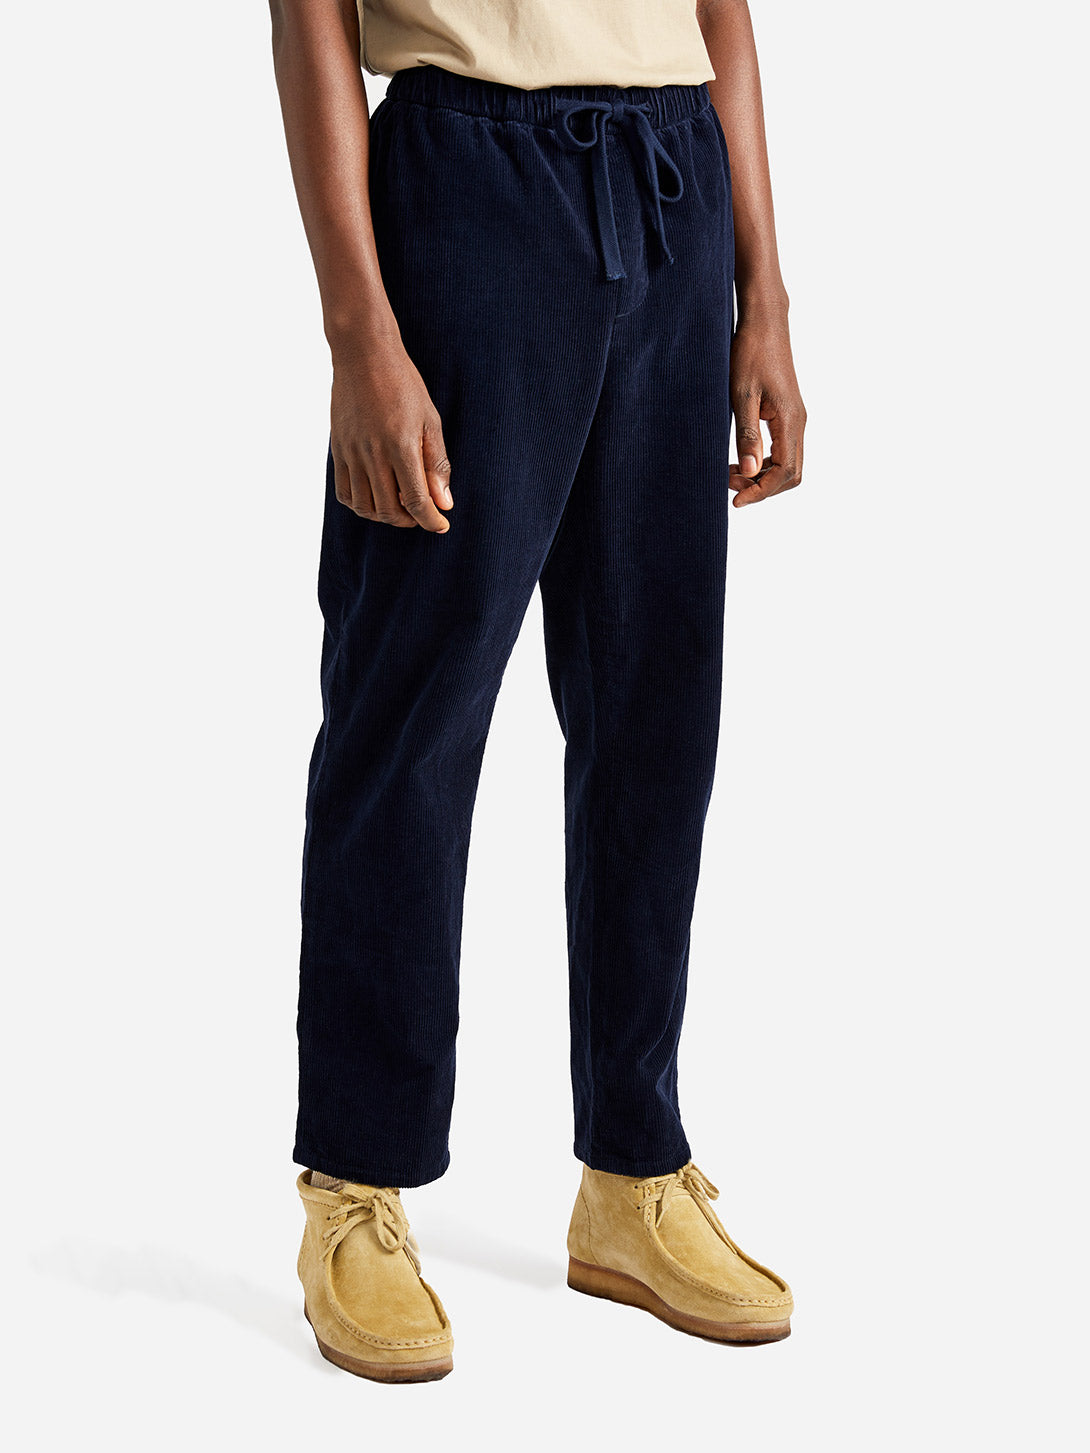 ISSA PAINTER PANTS NAVY - ONS Clothing